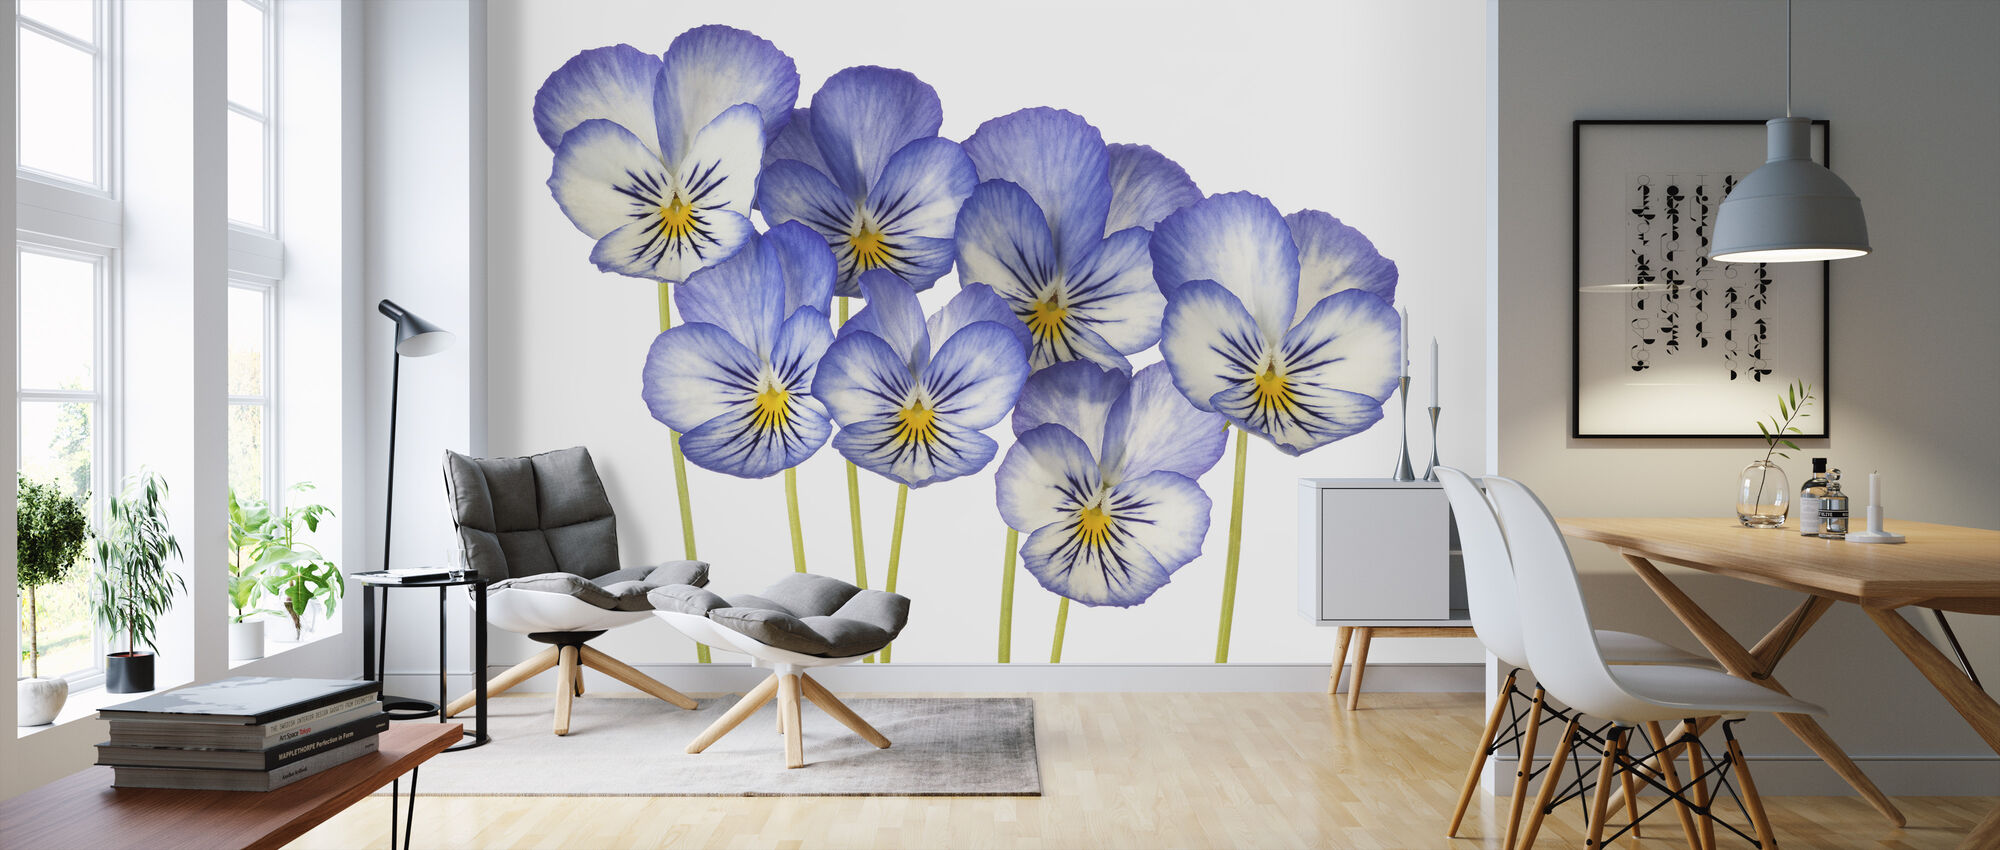 Blue Pansies - Wallpaper - Living Room